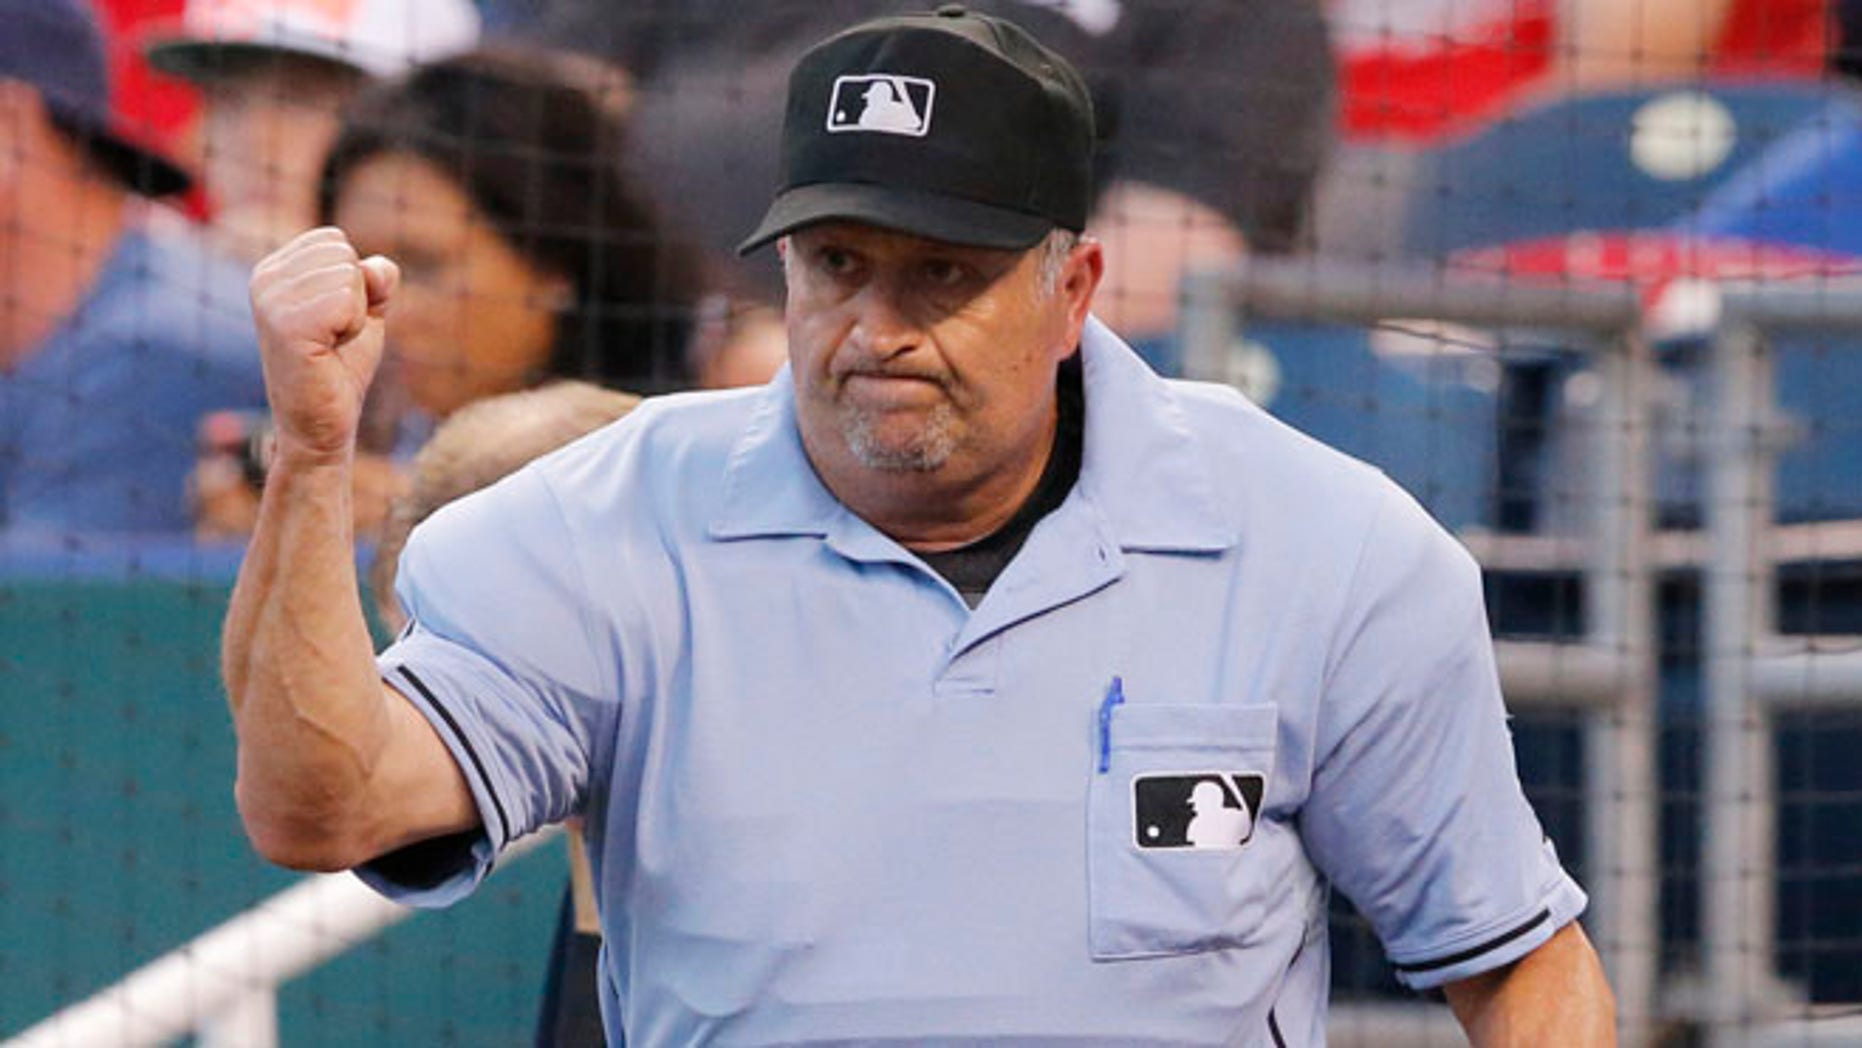 June 5, 2014: This photo shows umpire Dale Scott calling out St. Louis Cardinals' Yadier Molina after a play review in the fifth inning of a baseball game against the Kansas City Royals at Kauffman Stadium in Kansas City, Mo. (AP)